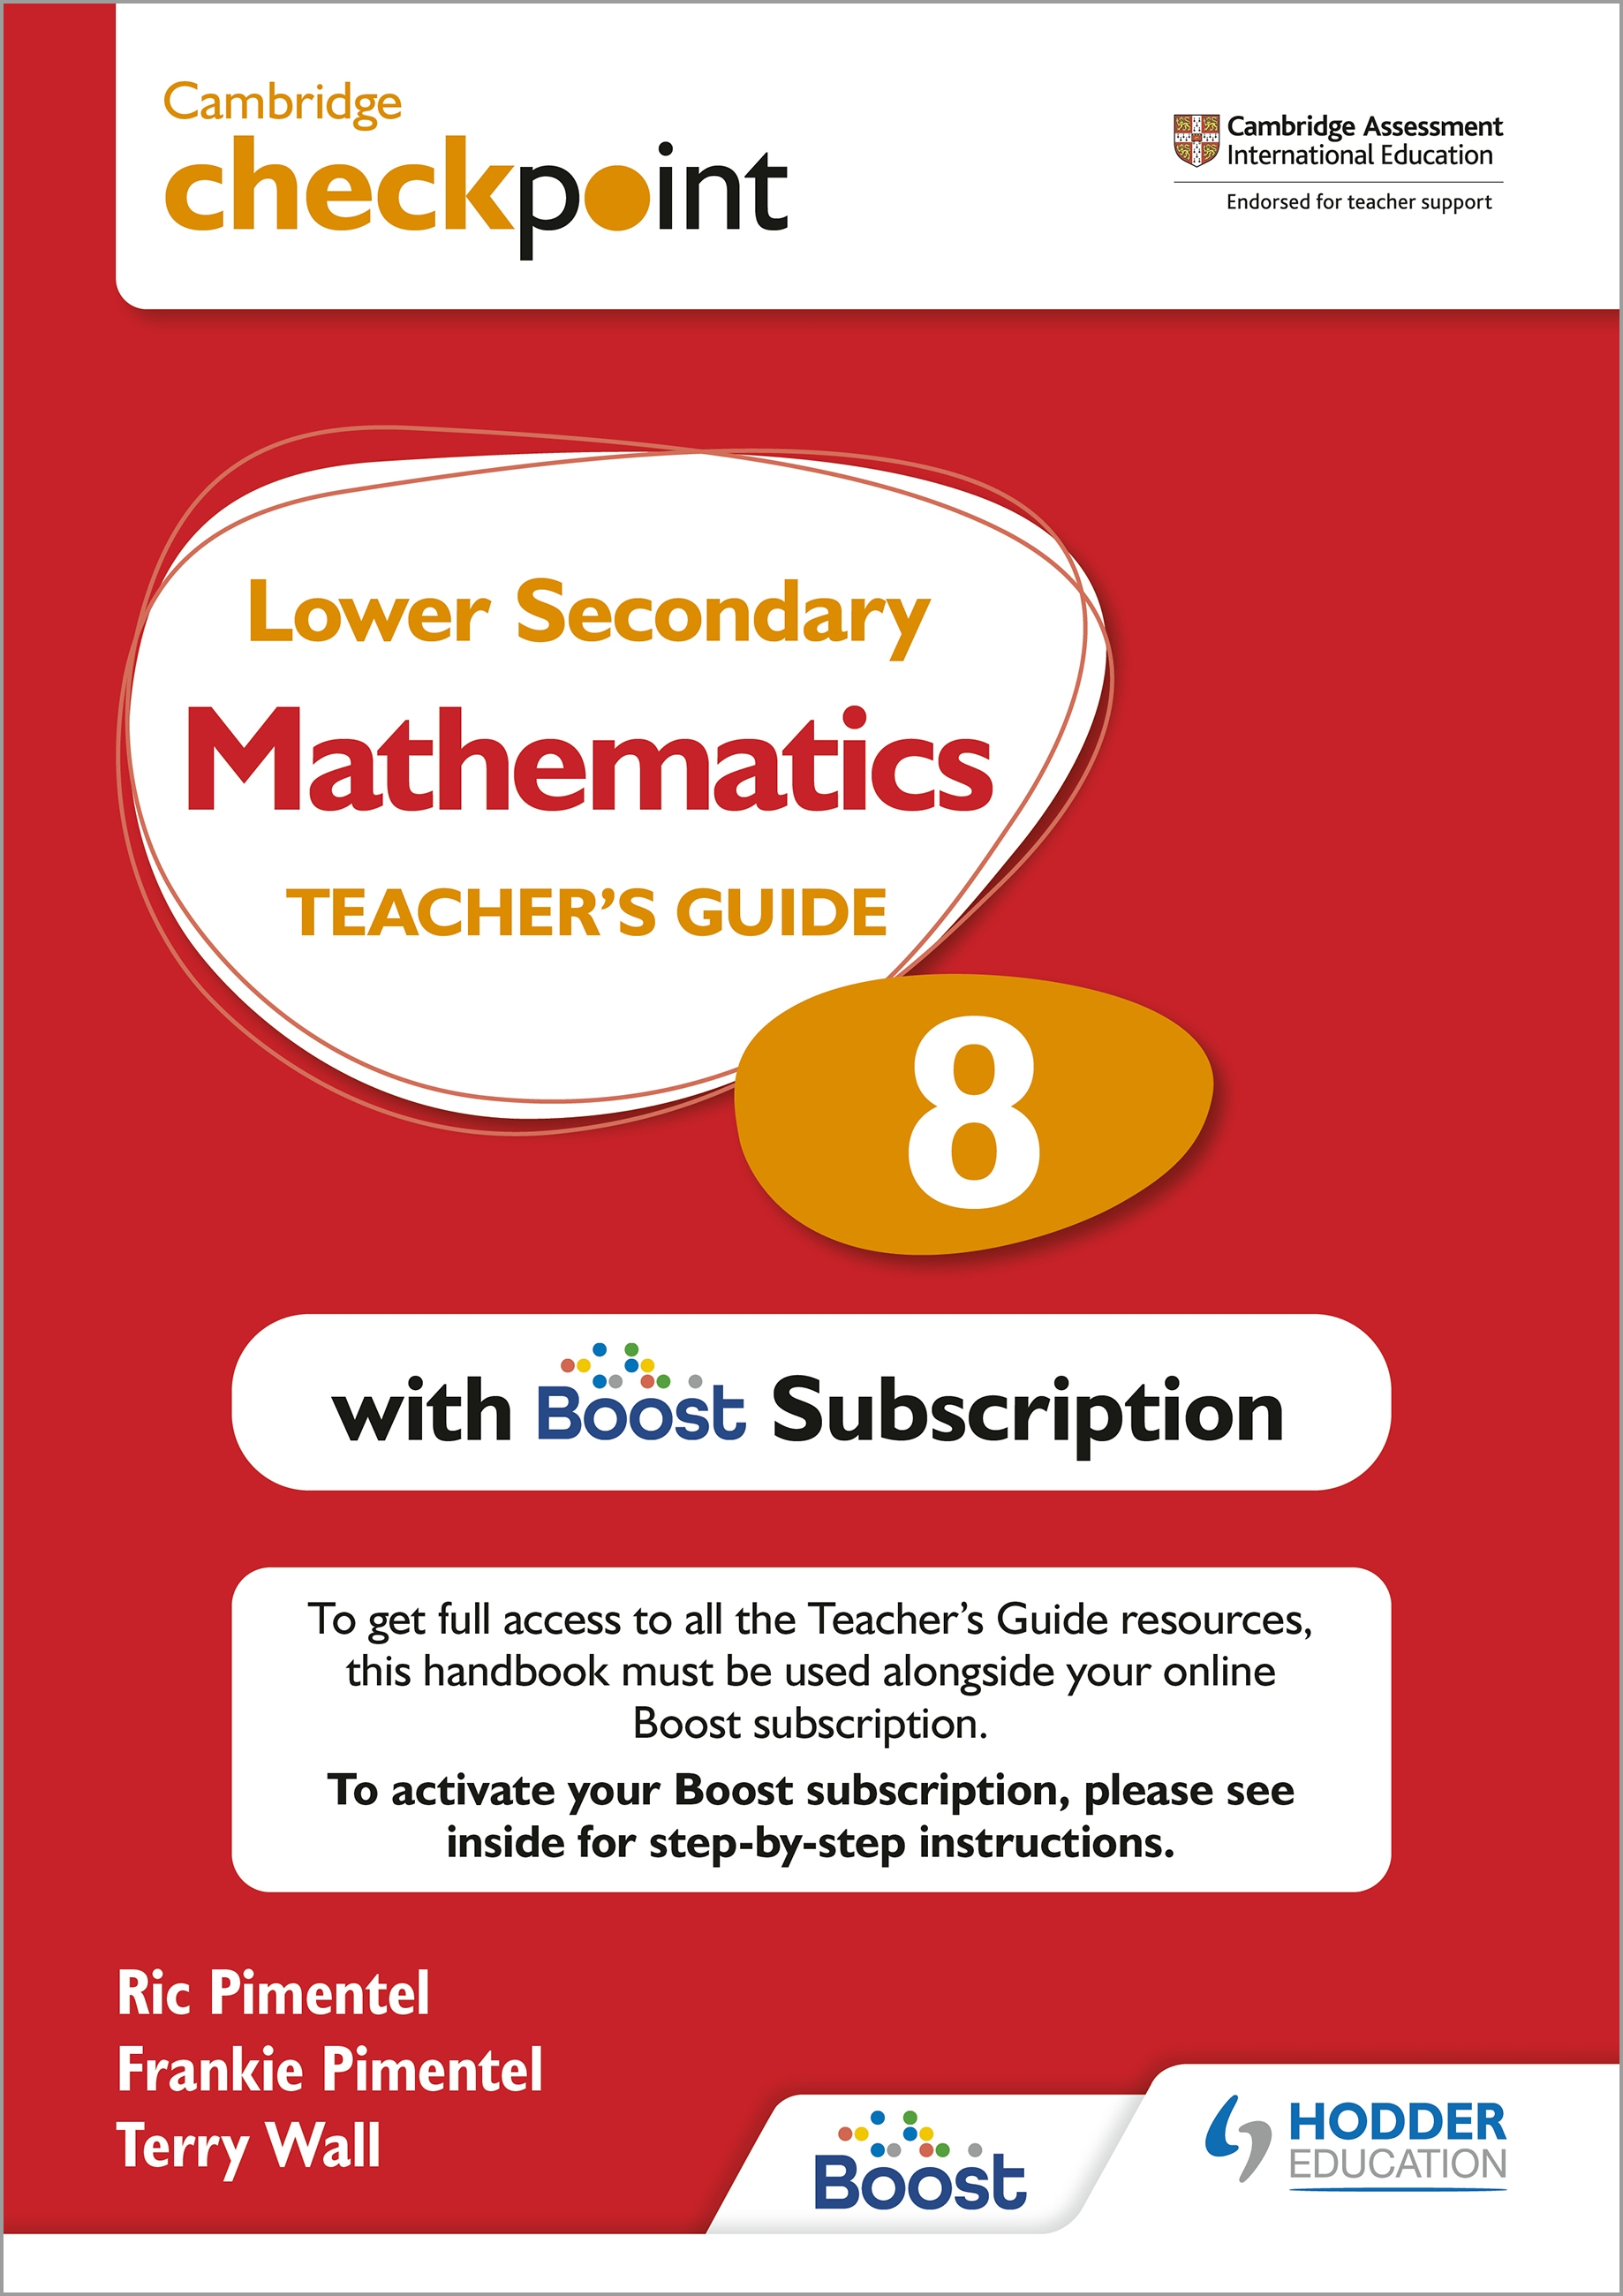 Cambridge Checkpoint Lower Secondary Mathematics Teacher's Guide 8 with Boost Subscription Booklet : Third Edition